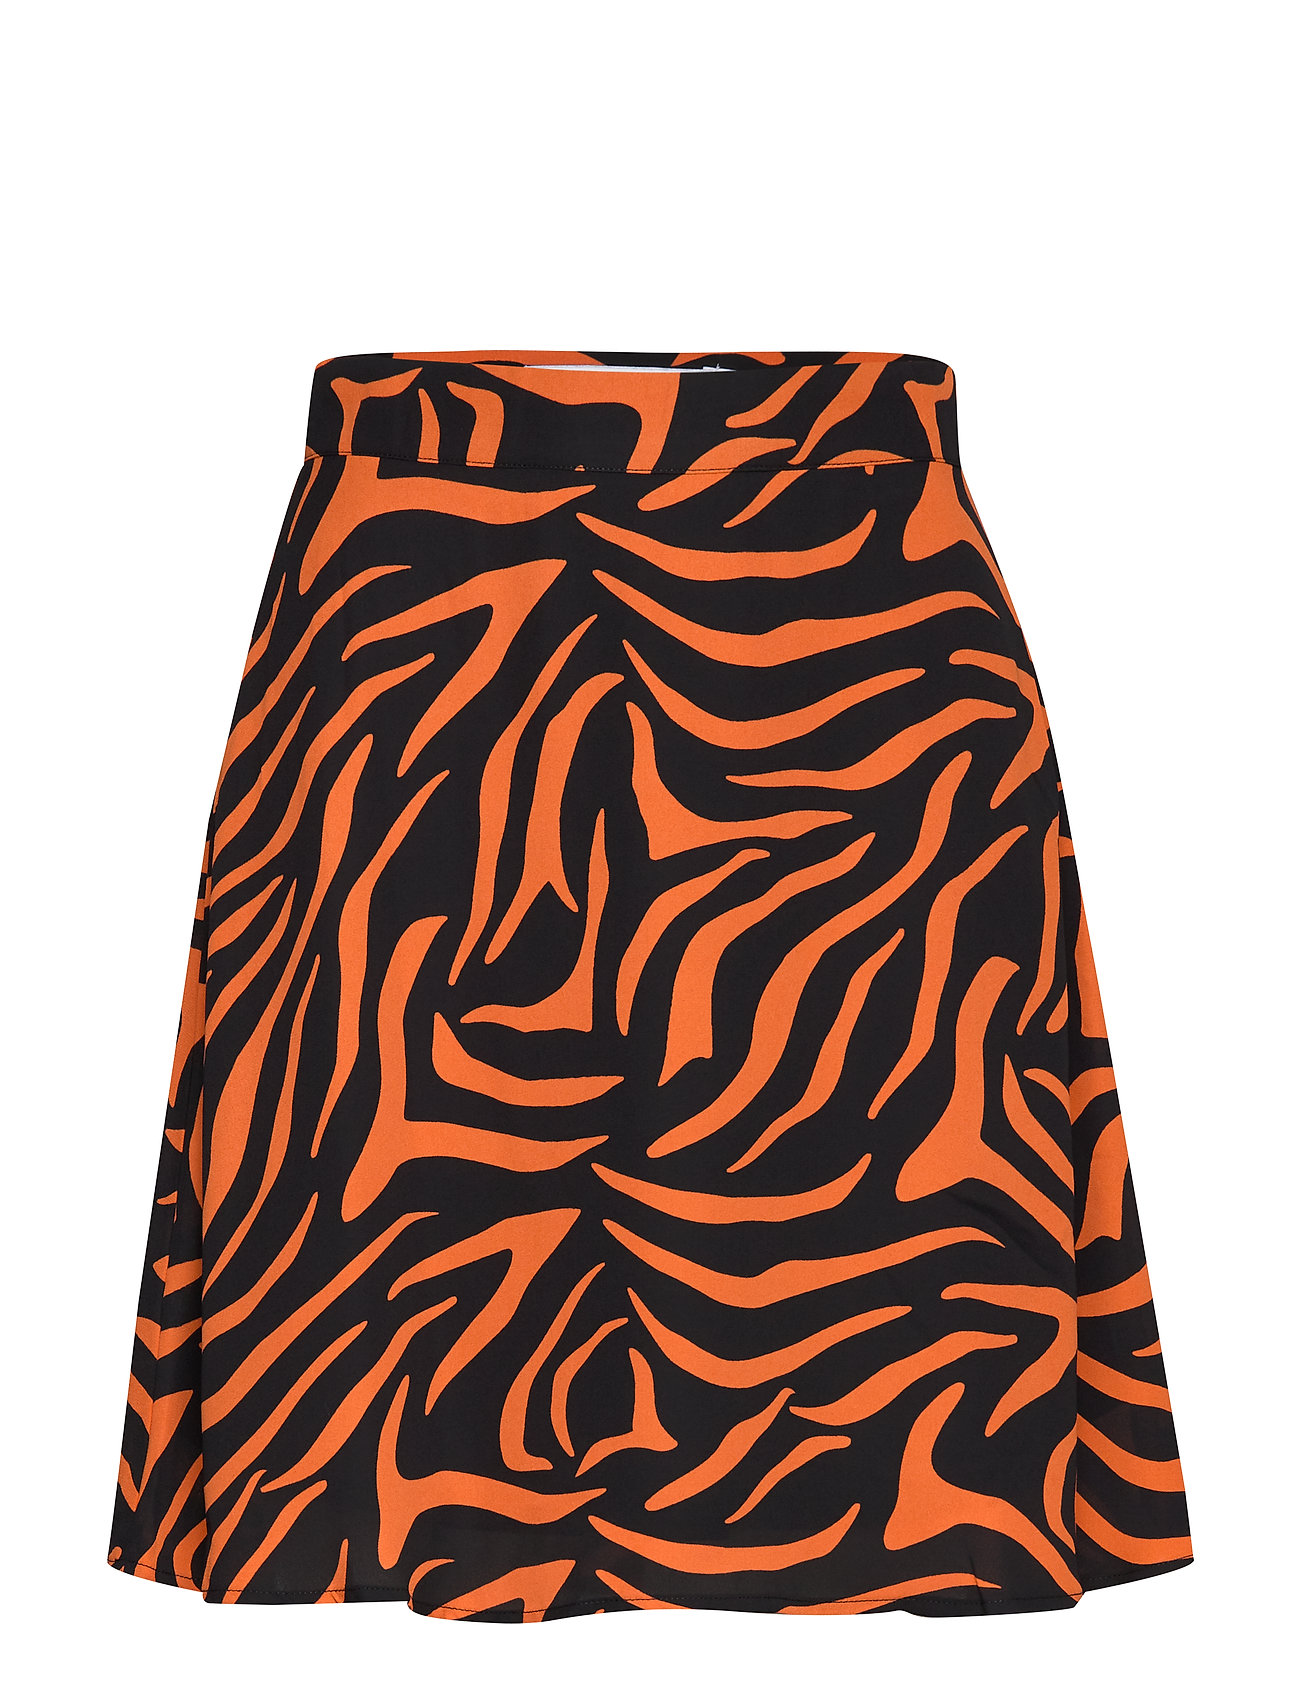 Ivyrevel A LINE MINI SKIRT - BLACK/ORANGE ZEBRA